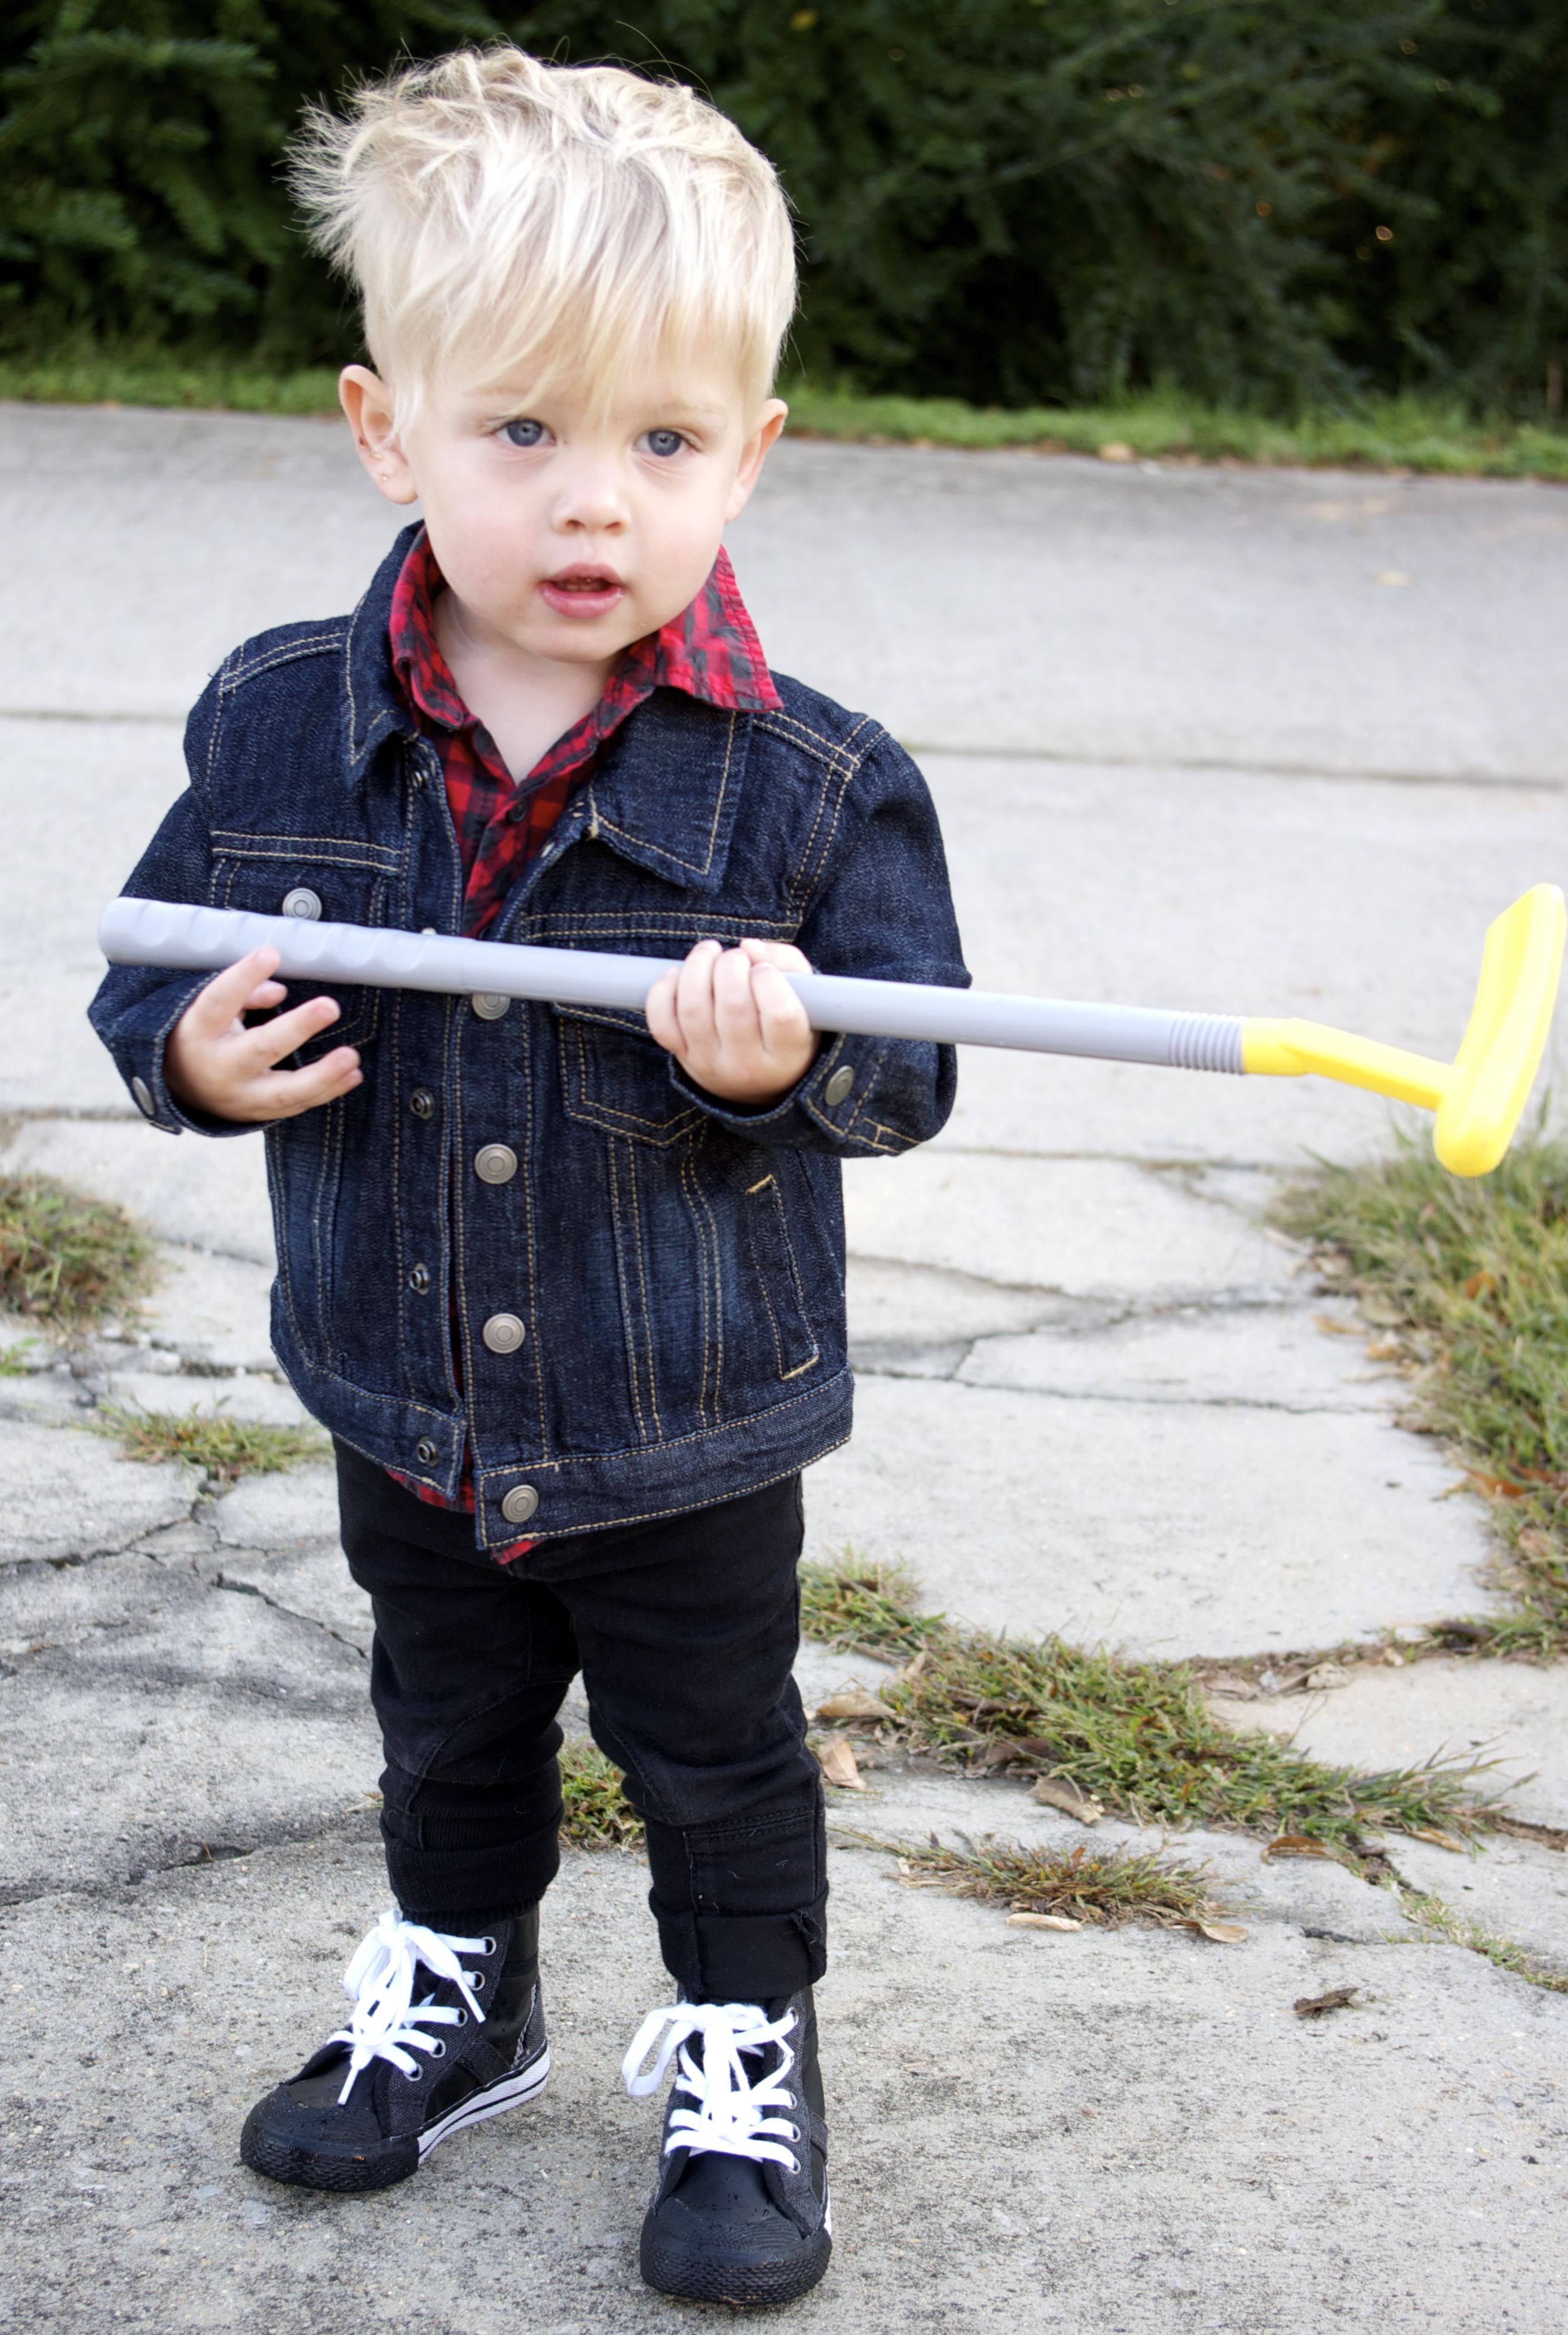 Plaid Button Down Denim Jacket Black Jeans High Top Sneakers Toddler Boy Outfits Little Boy Outfits Boy Outfits [ 3907 x 2624 Pixel ]